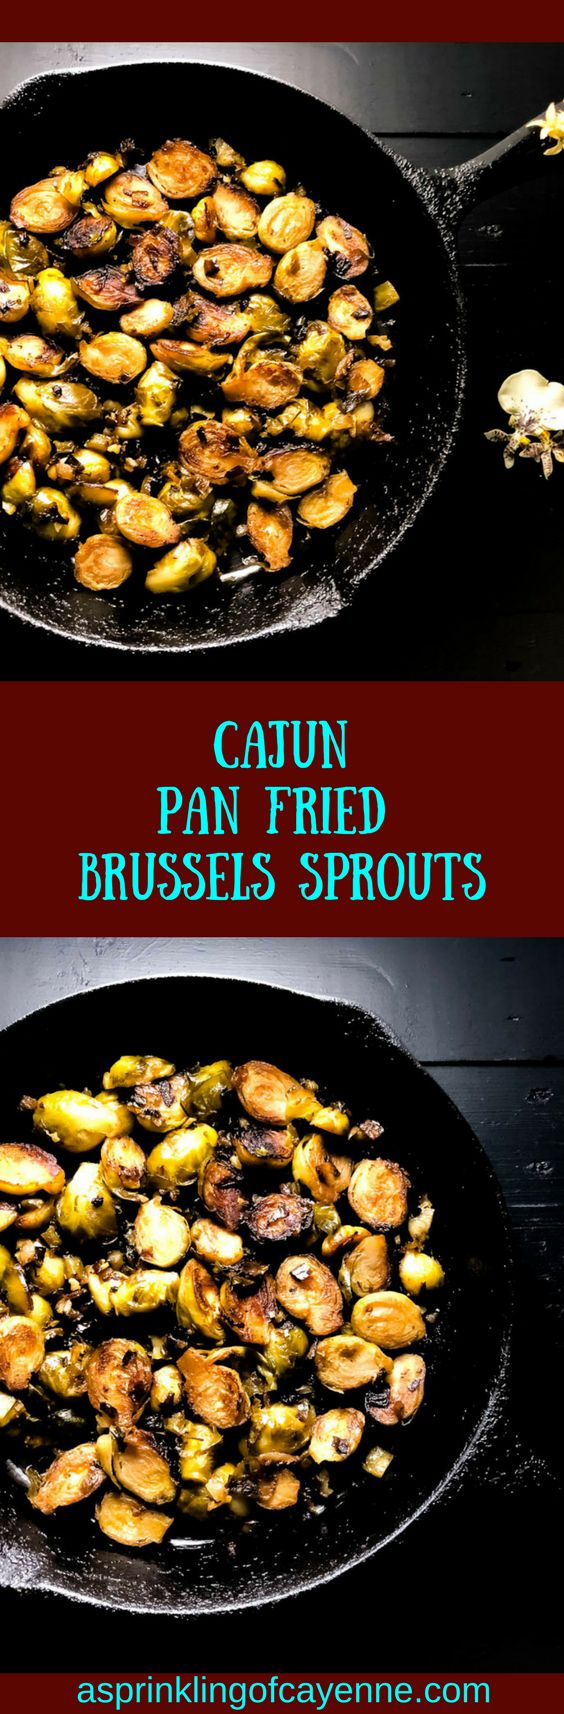 #Cajun Pan Fried Brussels Sprouts. Halved sprouts cooked down with the Cajun trinity, garlic, and a simple south Louisiana sauce. #glutenfreesidedish #brussels #brusselssprouts | https://asprinklingofcayenne.com/cajun-pan-fried-brussels-sprouts/